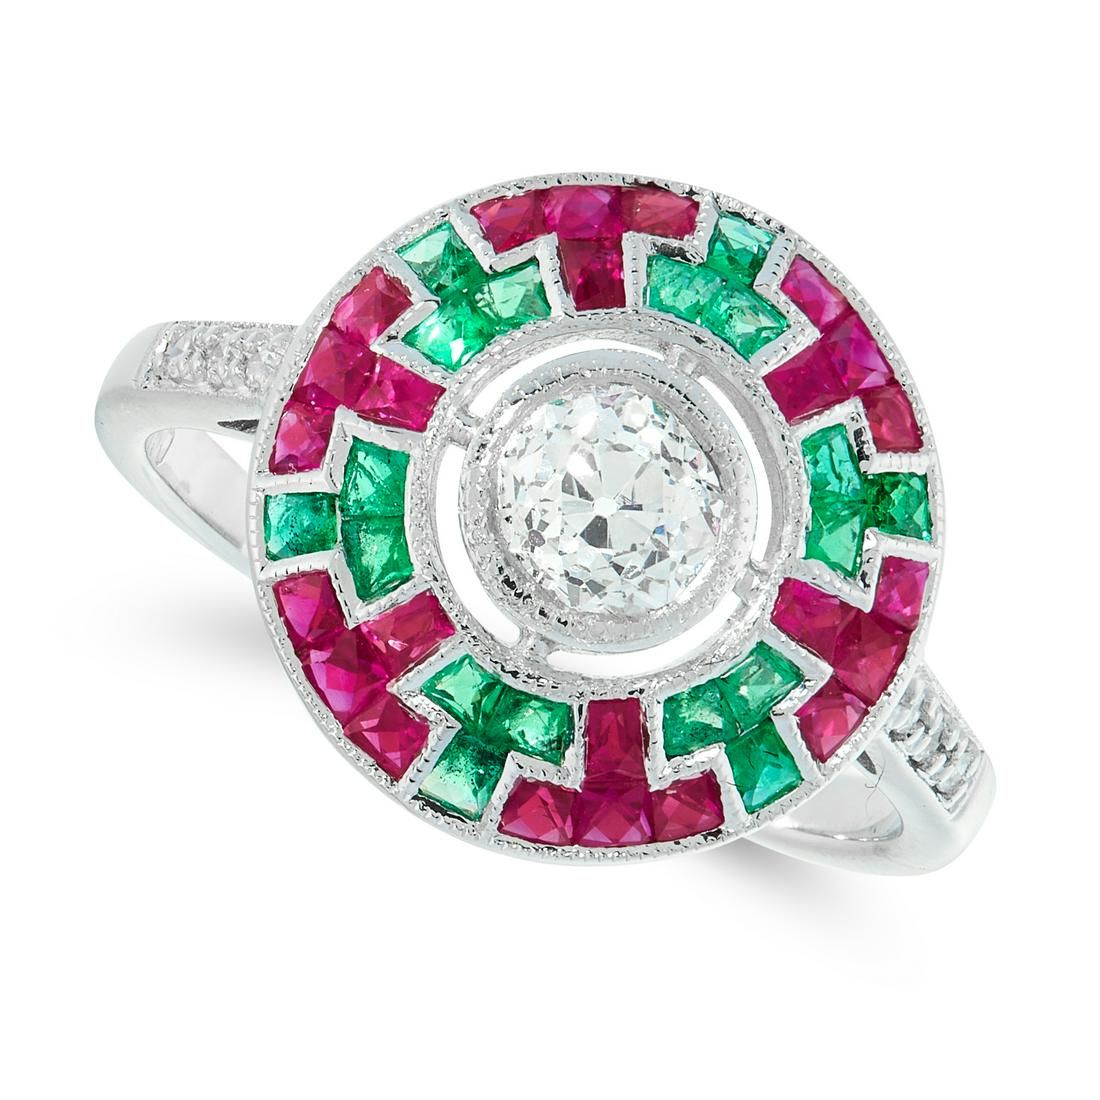 A DIAMOND, RUBY AND EMERALD TARGET RING in 18ct white